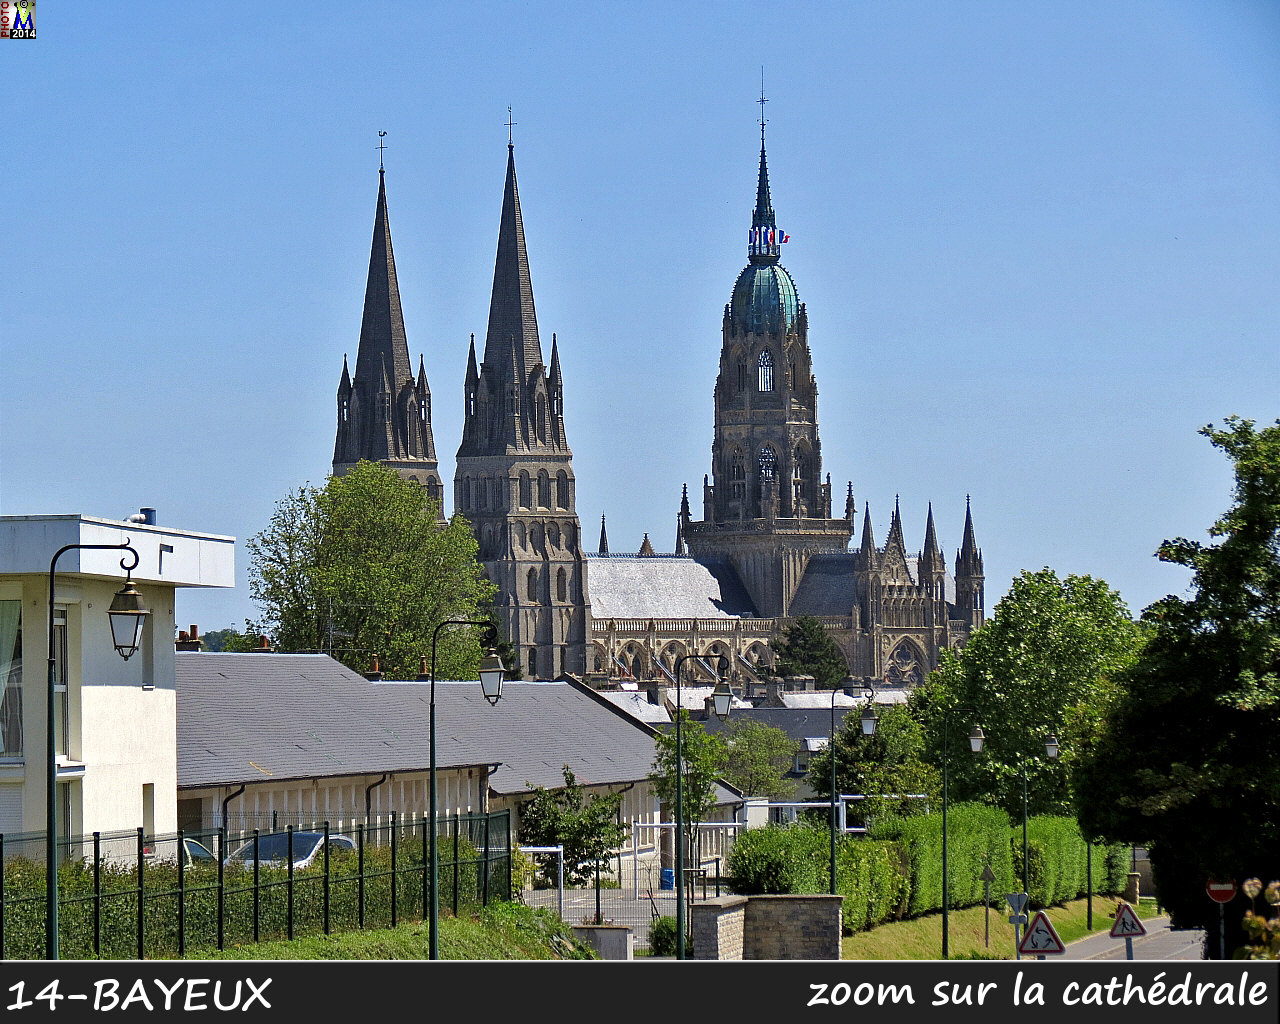 14BAYEUX_cathedrale_118.jpg